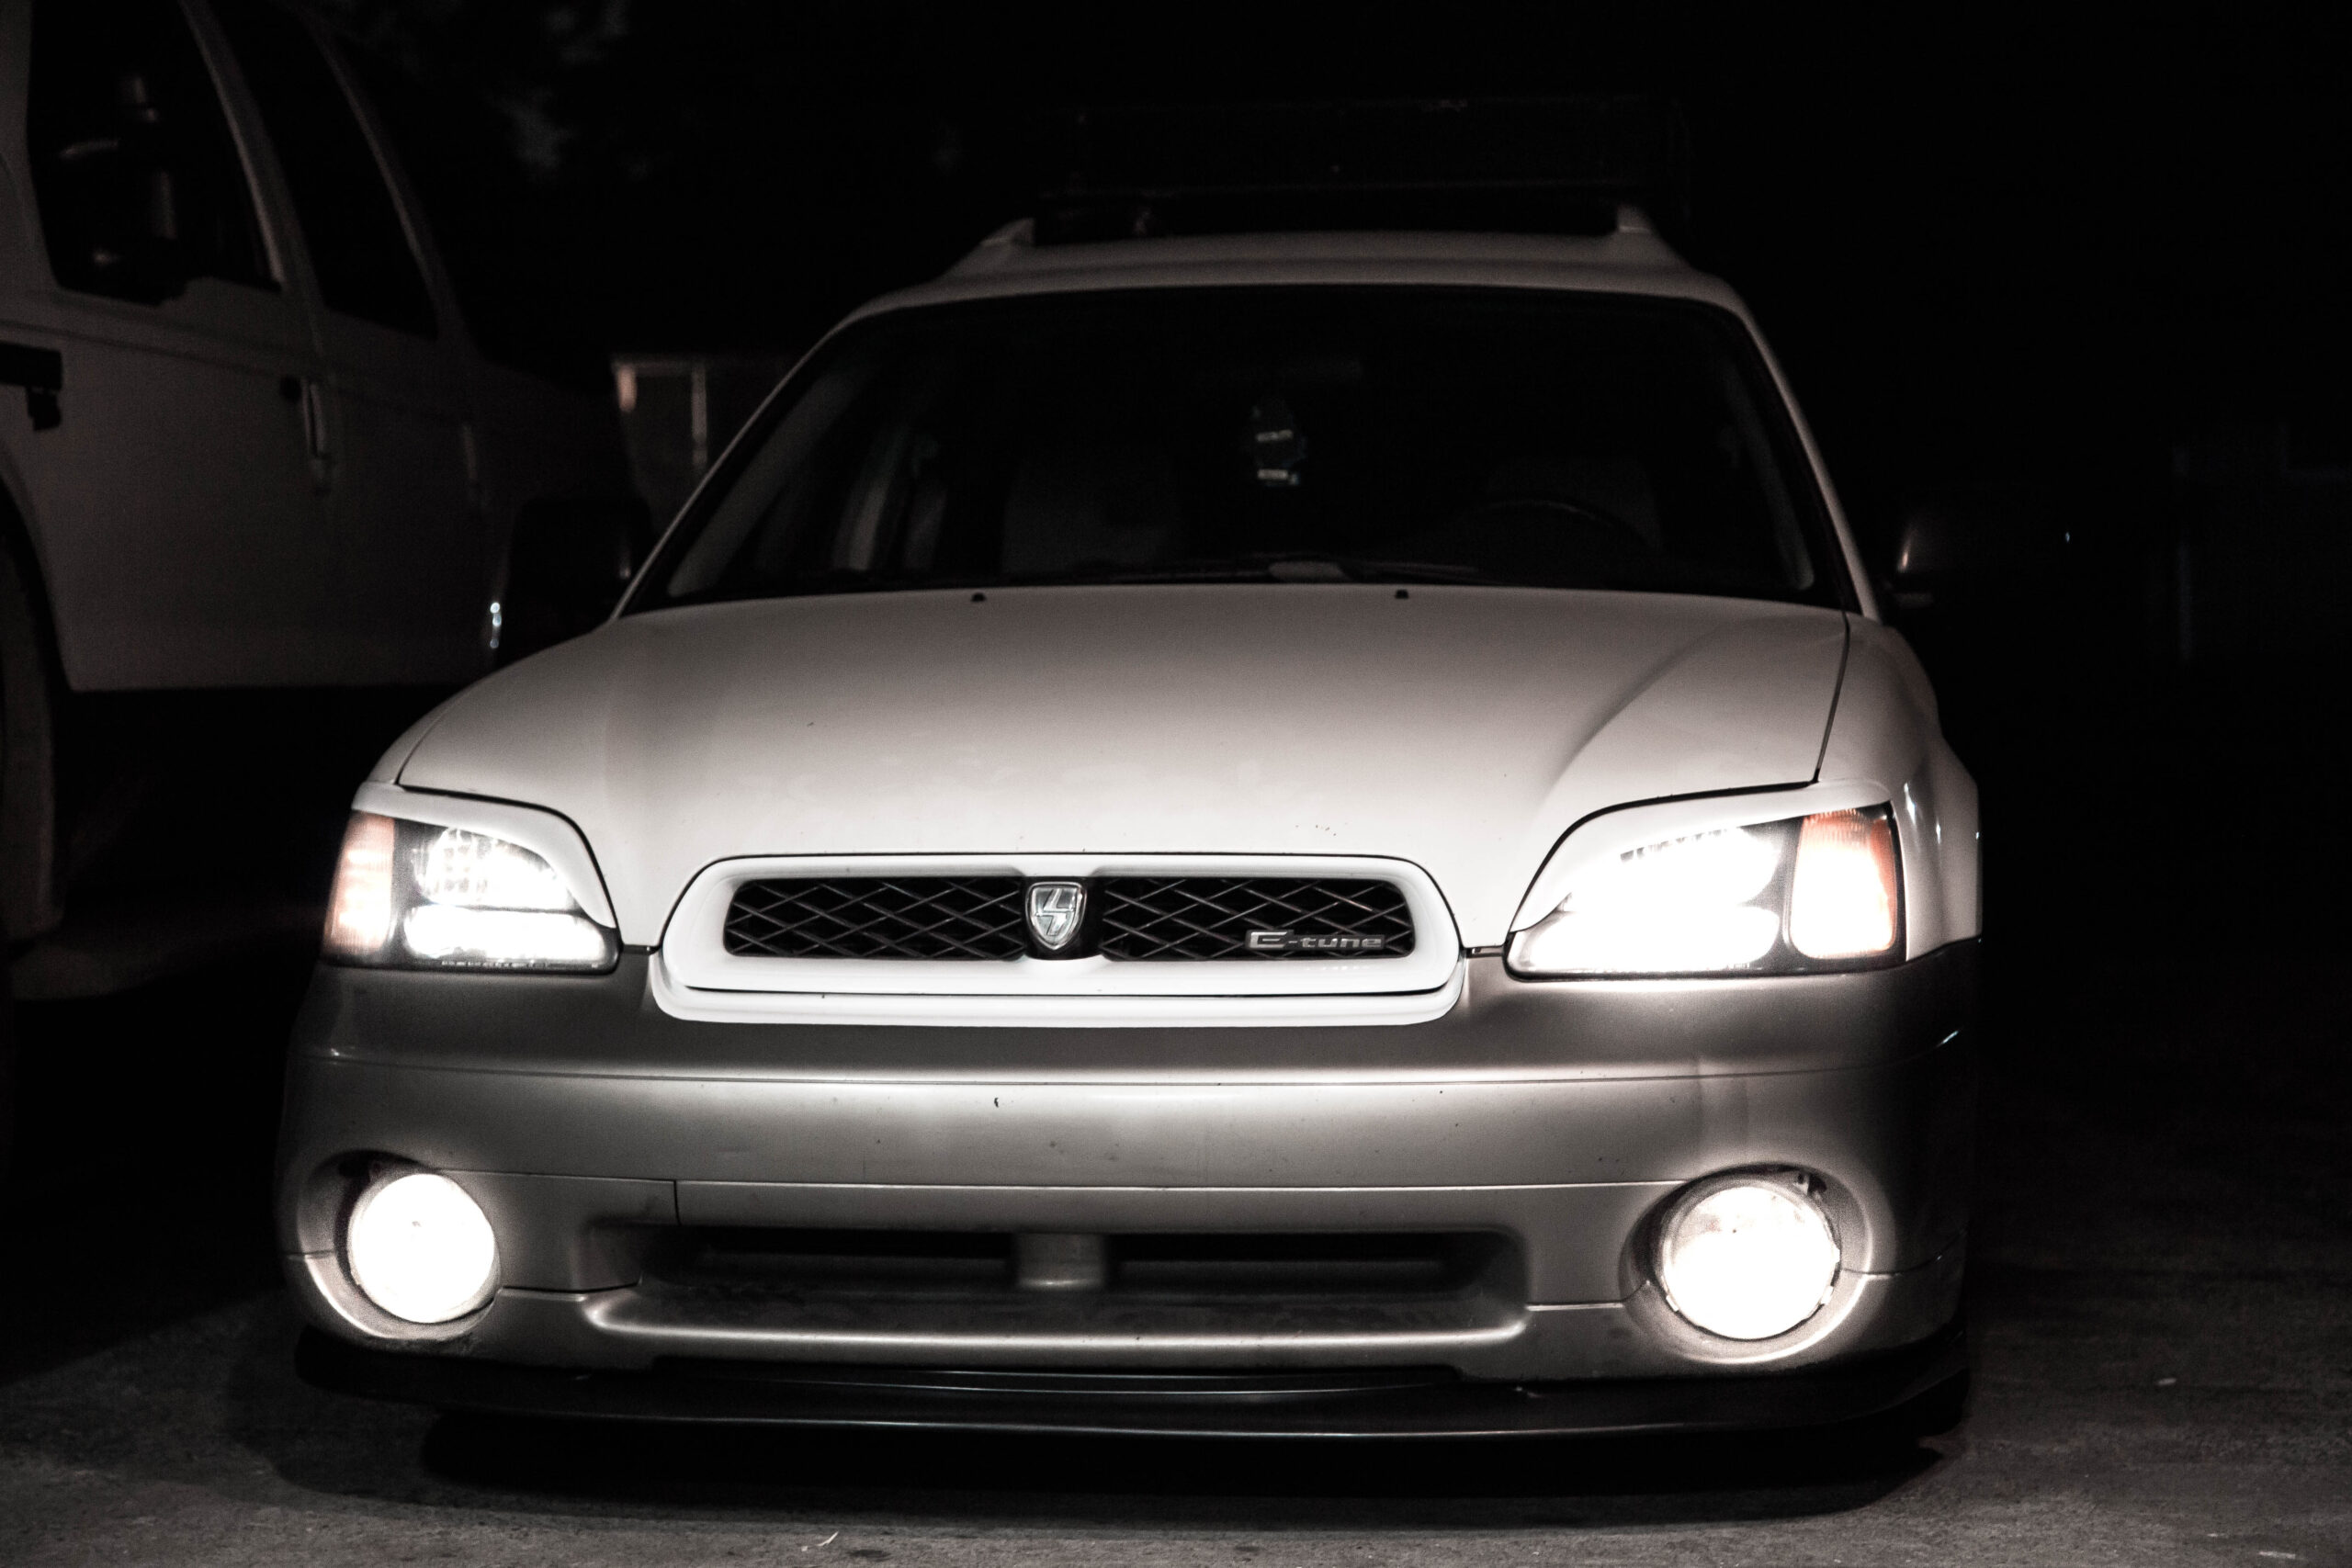 How To: Front Lip Install On 2000-2004 Subaru Outback